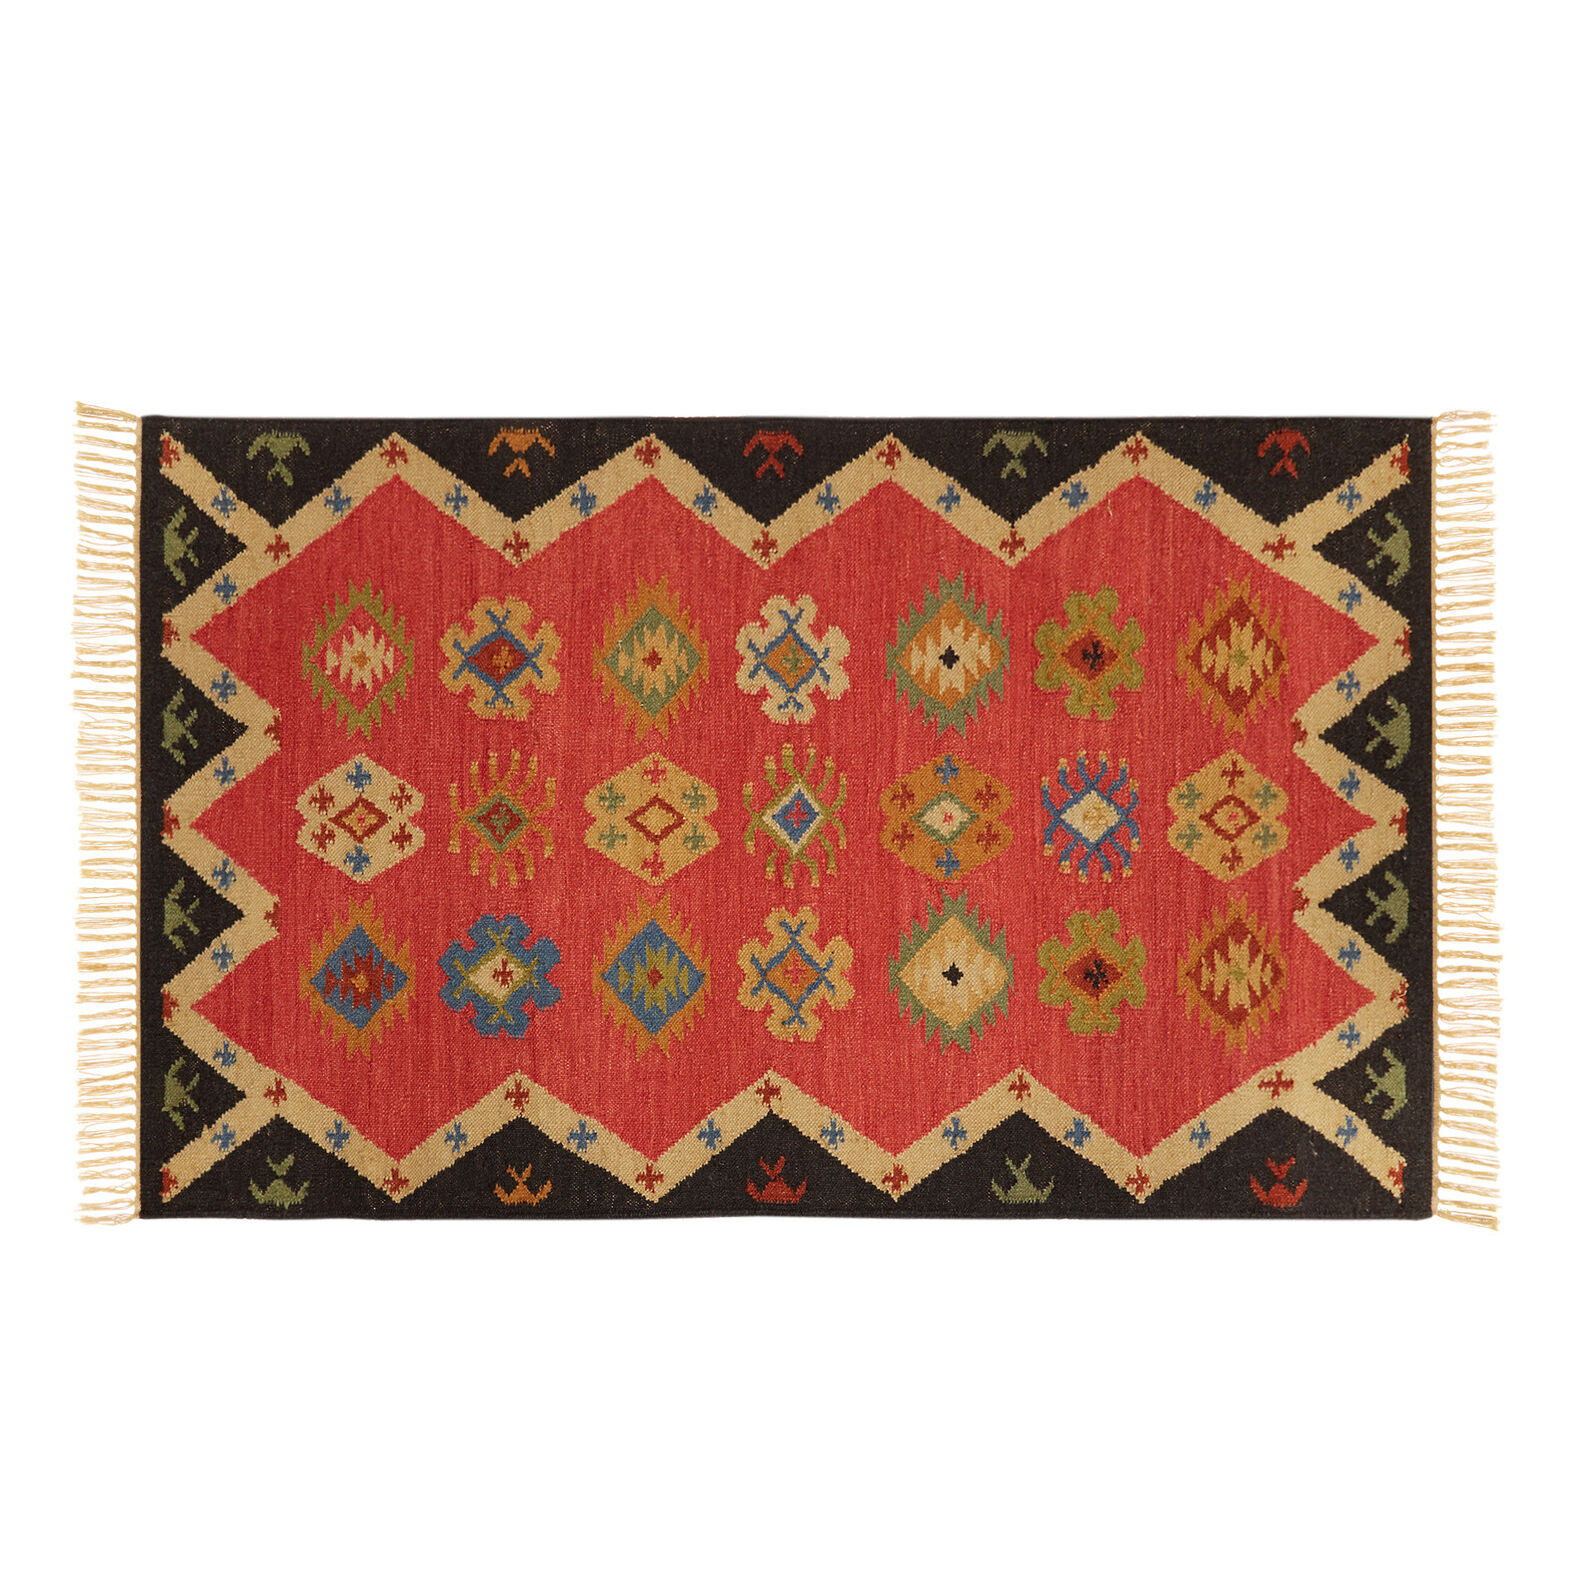 Handwoven kilim in wool and cotton